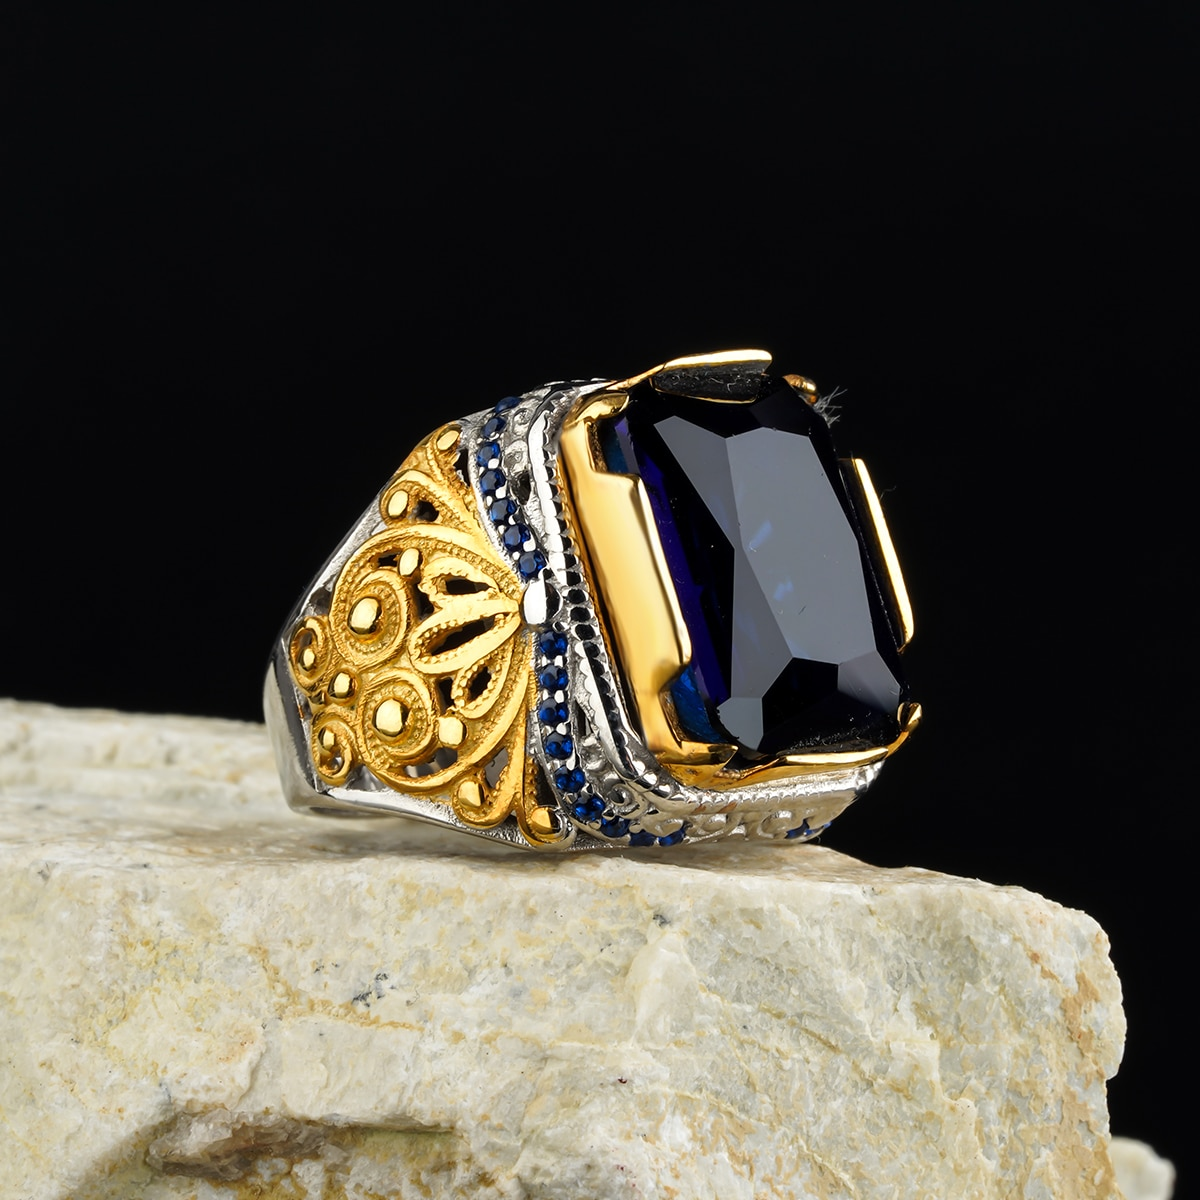 Citrine Stone Ring Custom Jewelry Guaranteed High-quality 925 Sterling Silver Onyx, Zircon in a luxurious way for men with gift